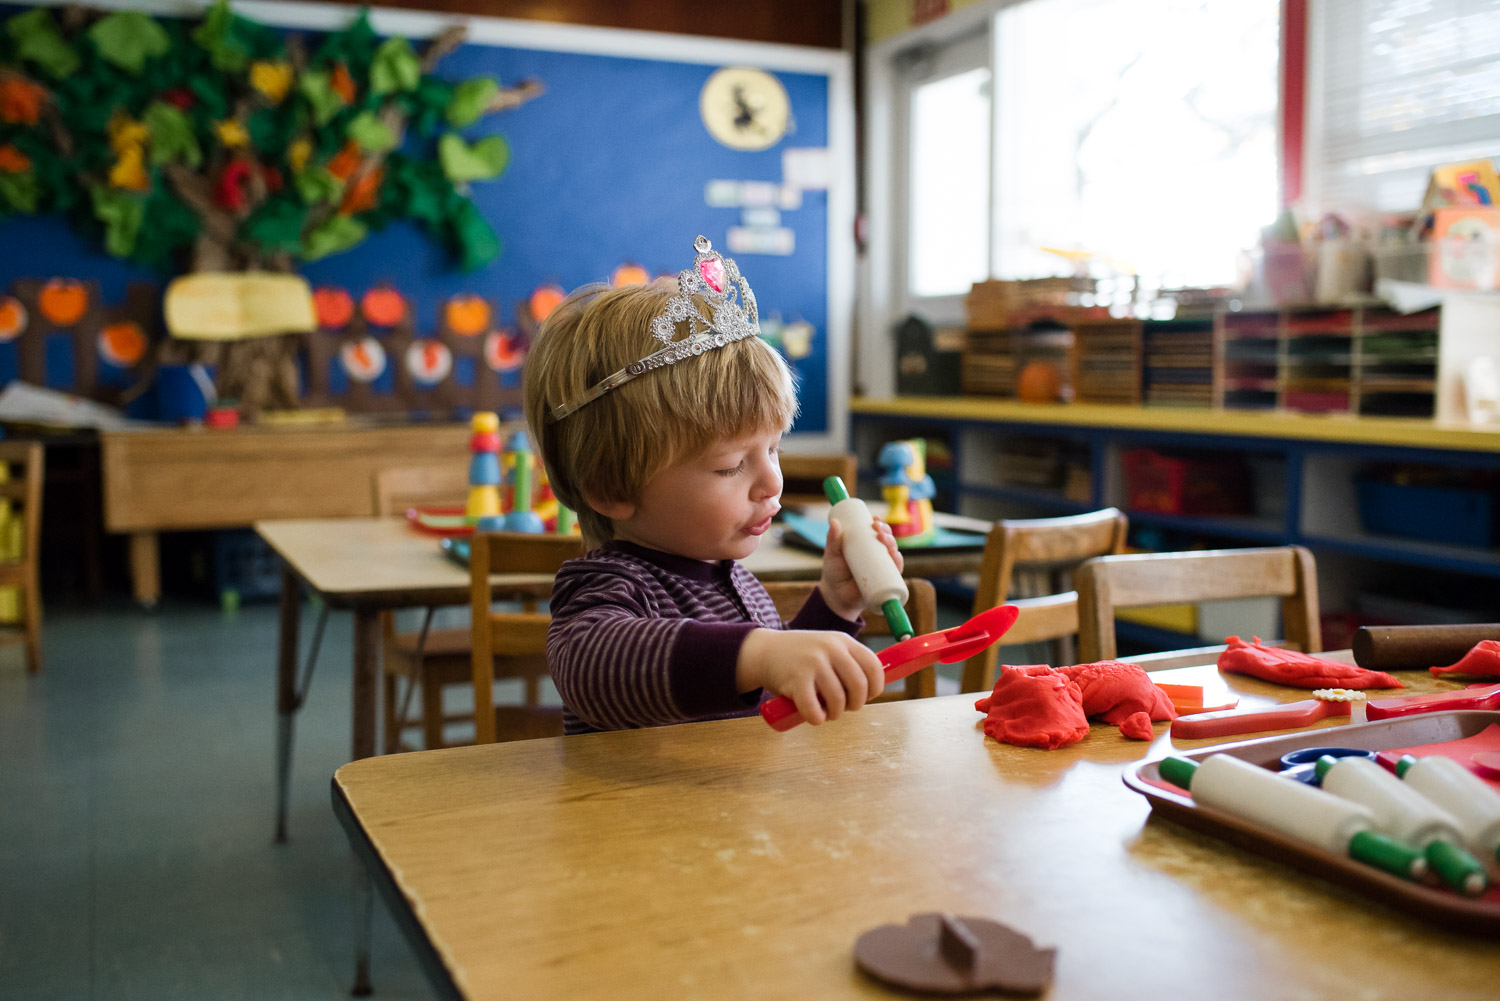 Little boy playing with play doh at nursery school.